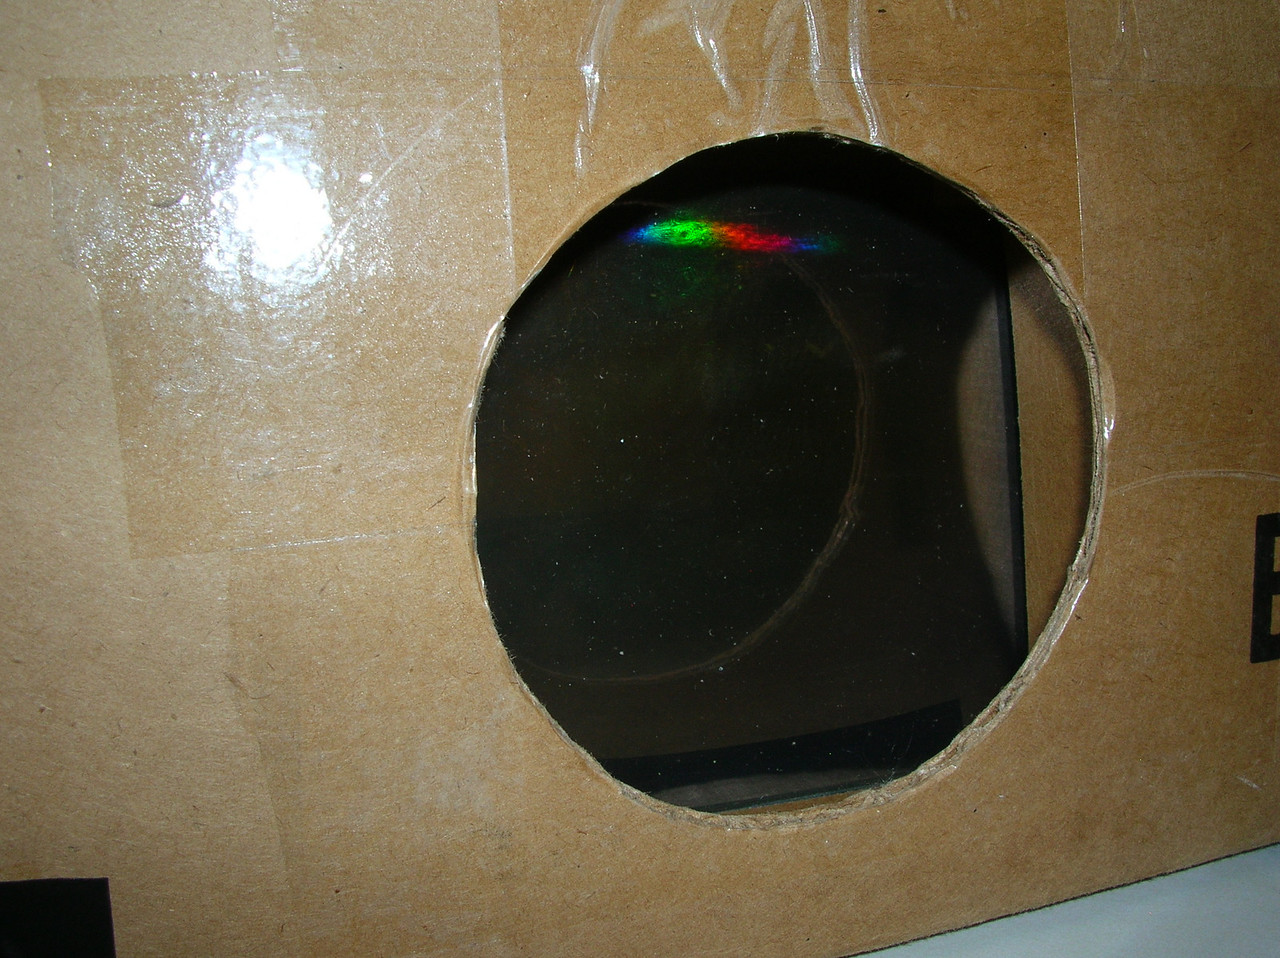 The Camera-end, with a view of the holographic grating inside.